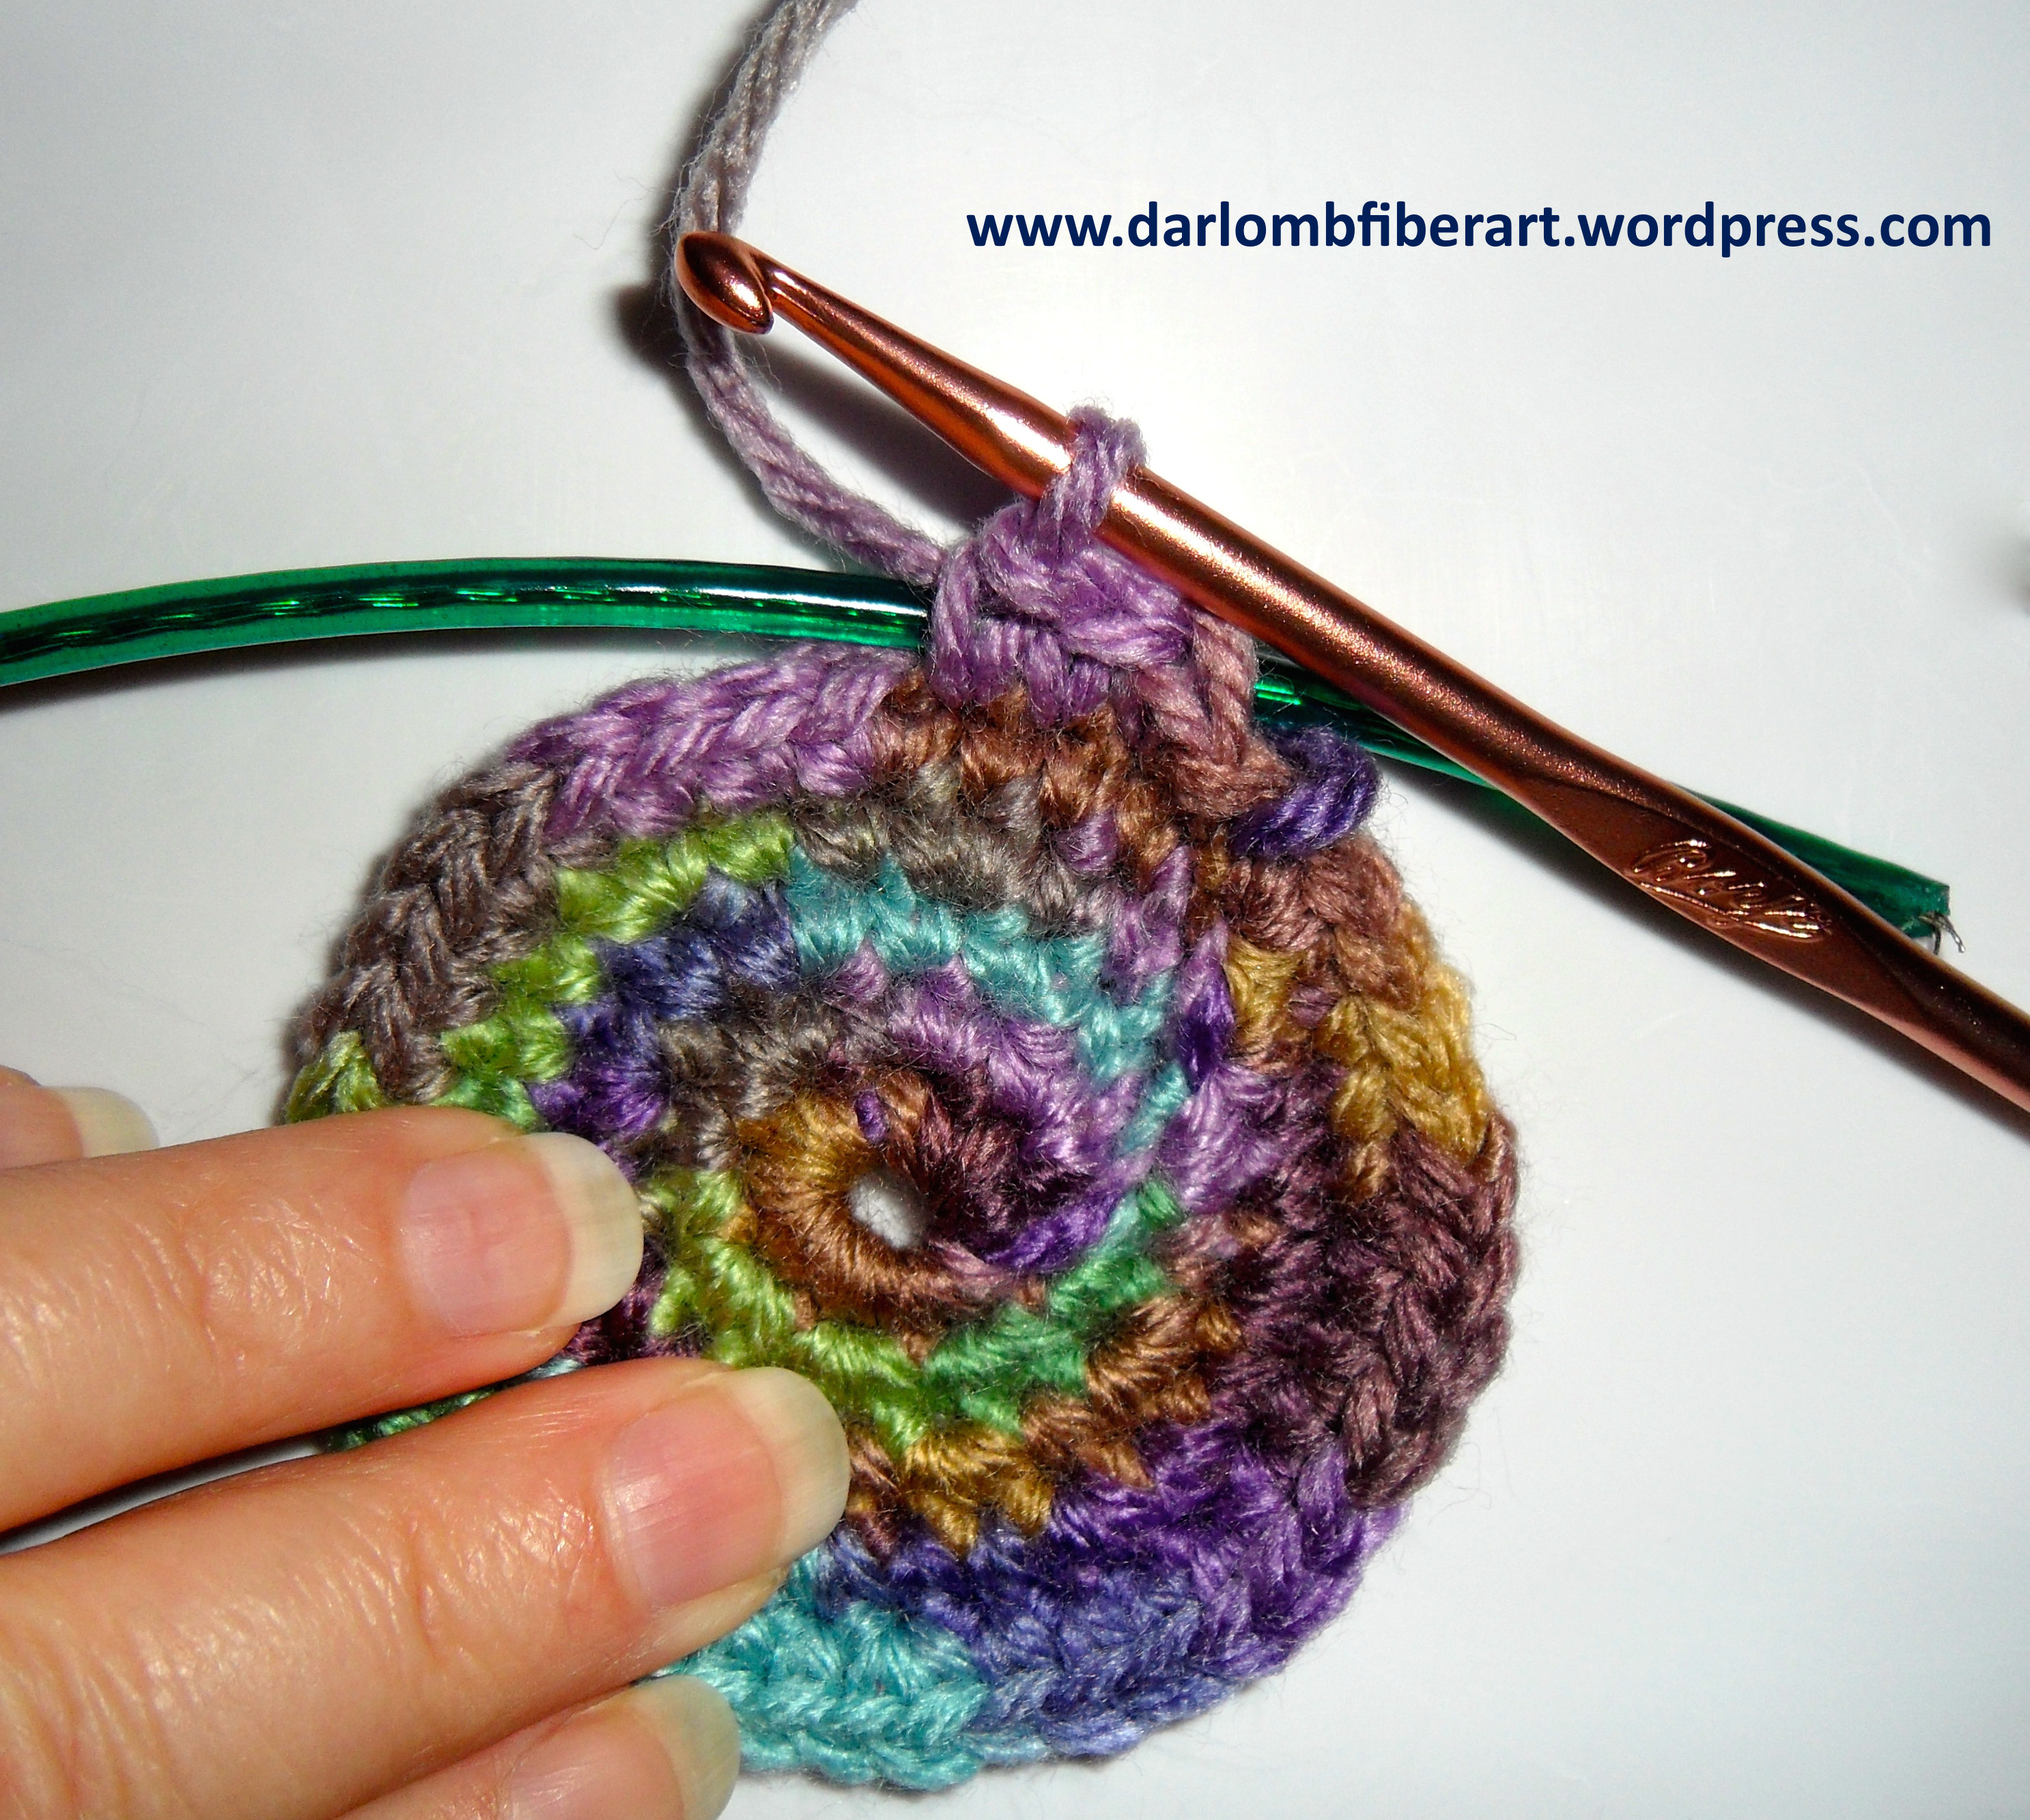 Crochet Cording Lovely Small Crochet Coiled Basket Tutorial Of Marvelous 43 Images Crochet Cording